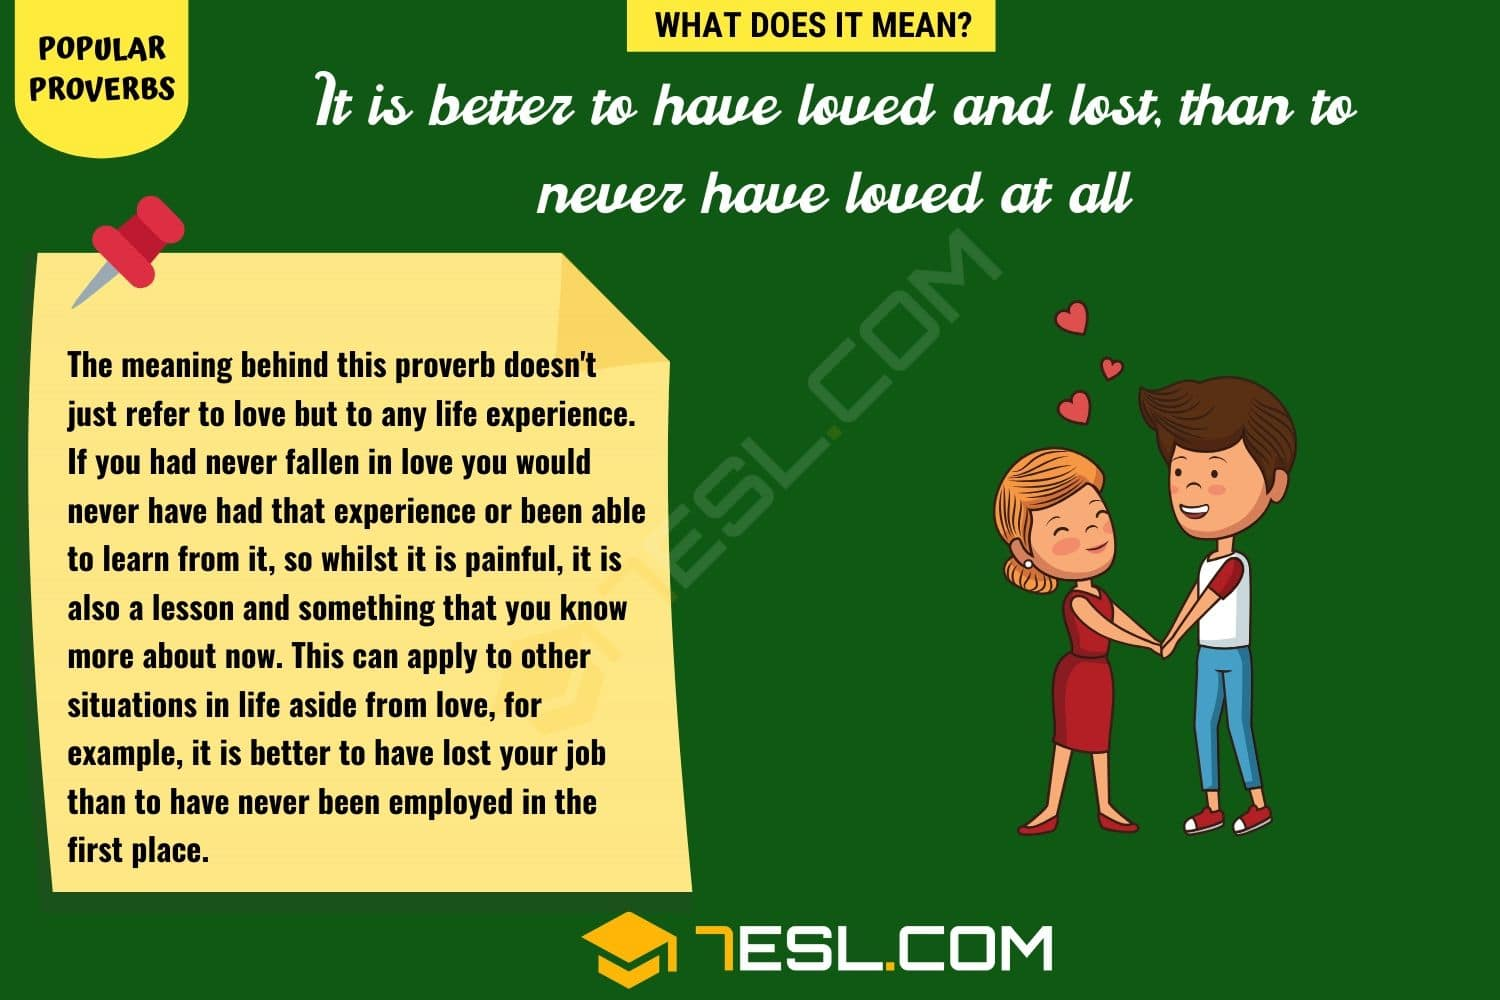 It is better to have loved and lost, than to never have loved at all